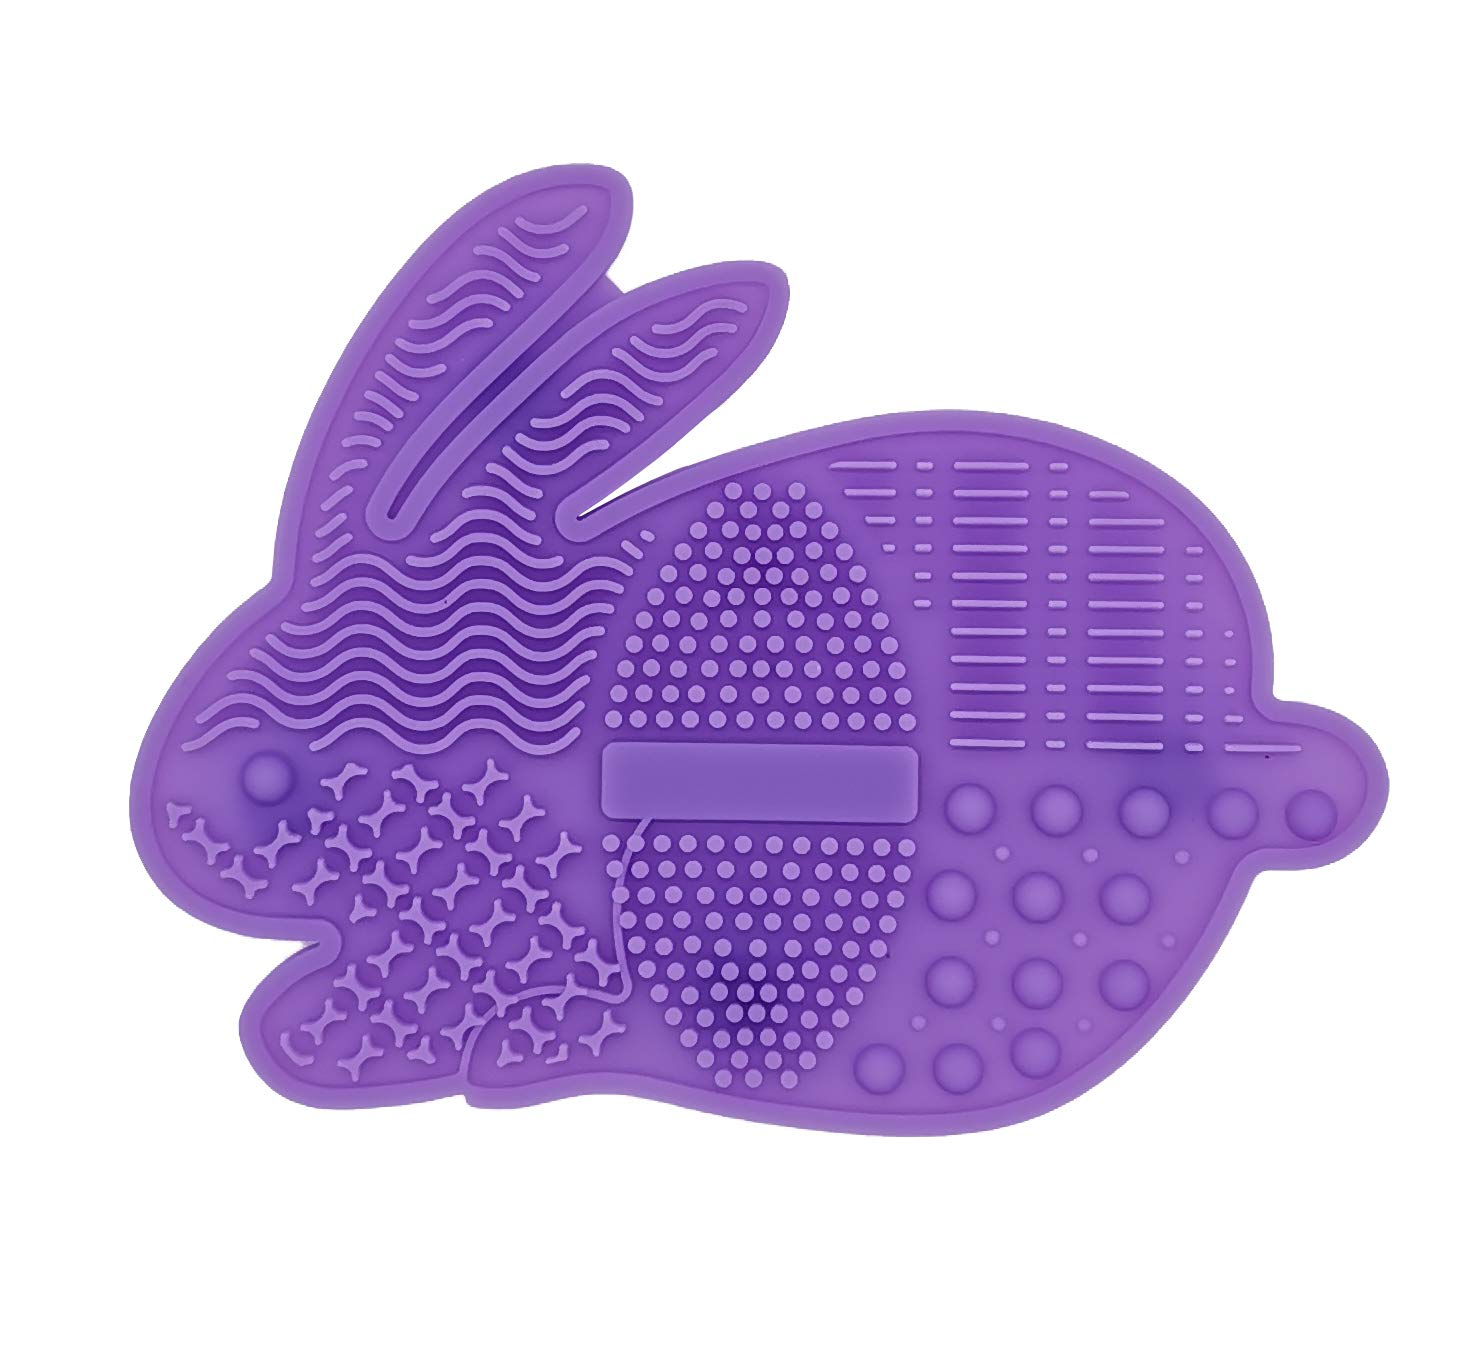 WAVALP Makeup Brush Cleaner Mat, Makeup Brush Cleaning Pad, Cosmetics Brush Cleaner, Portable Silicone Beauty Blender Washing Tool Scrubber Suction Cup (Purple 1 Piece)